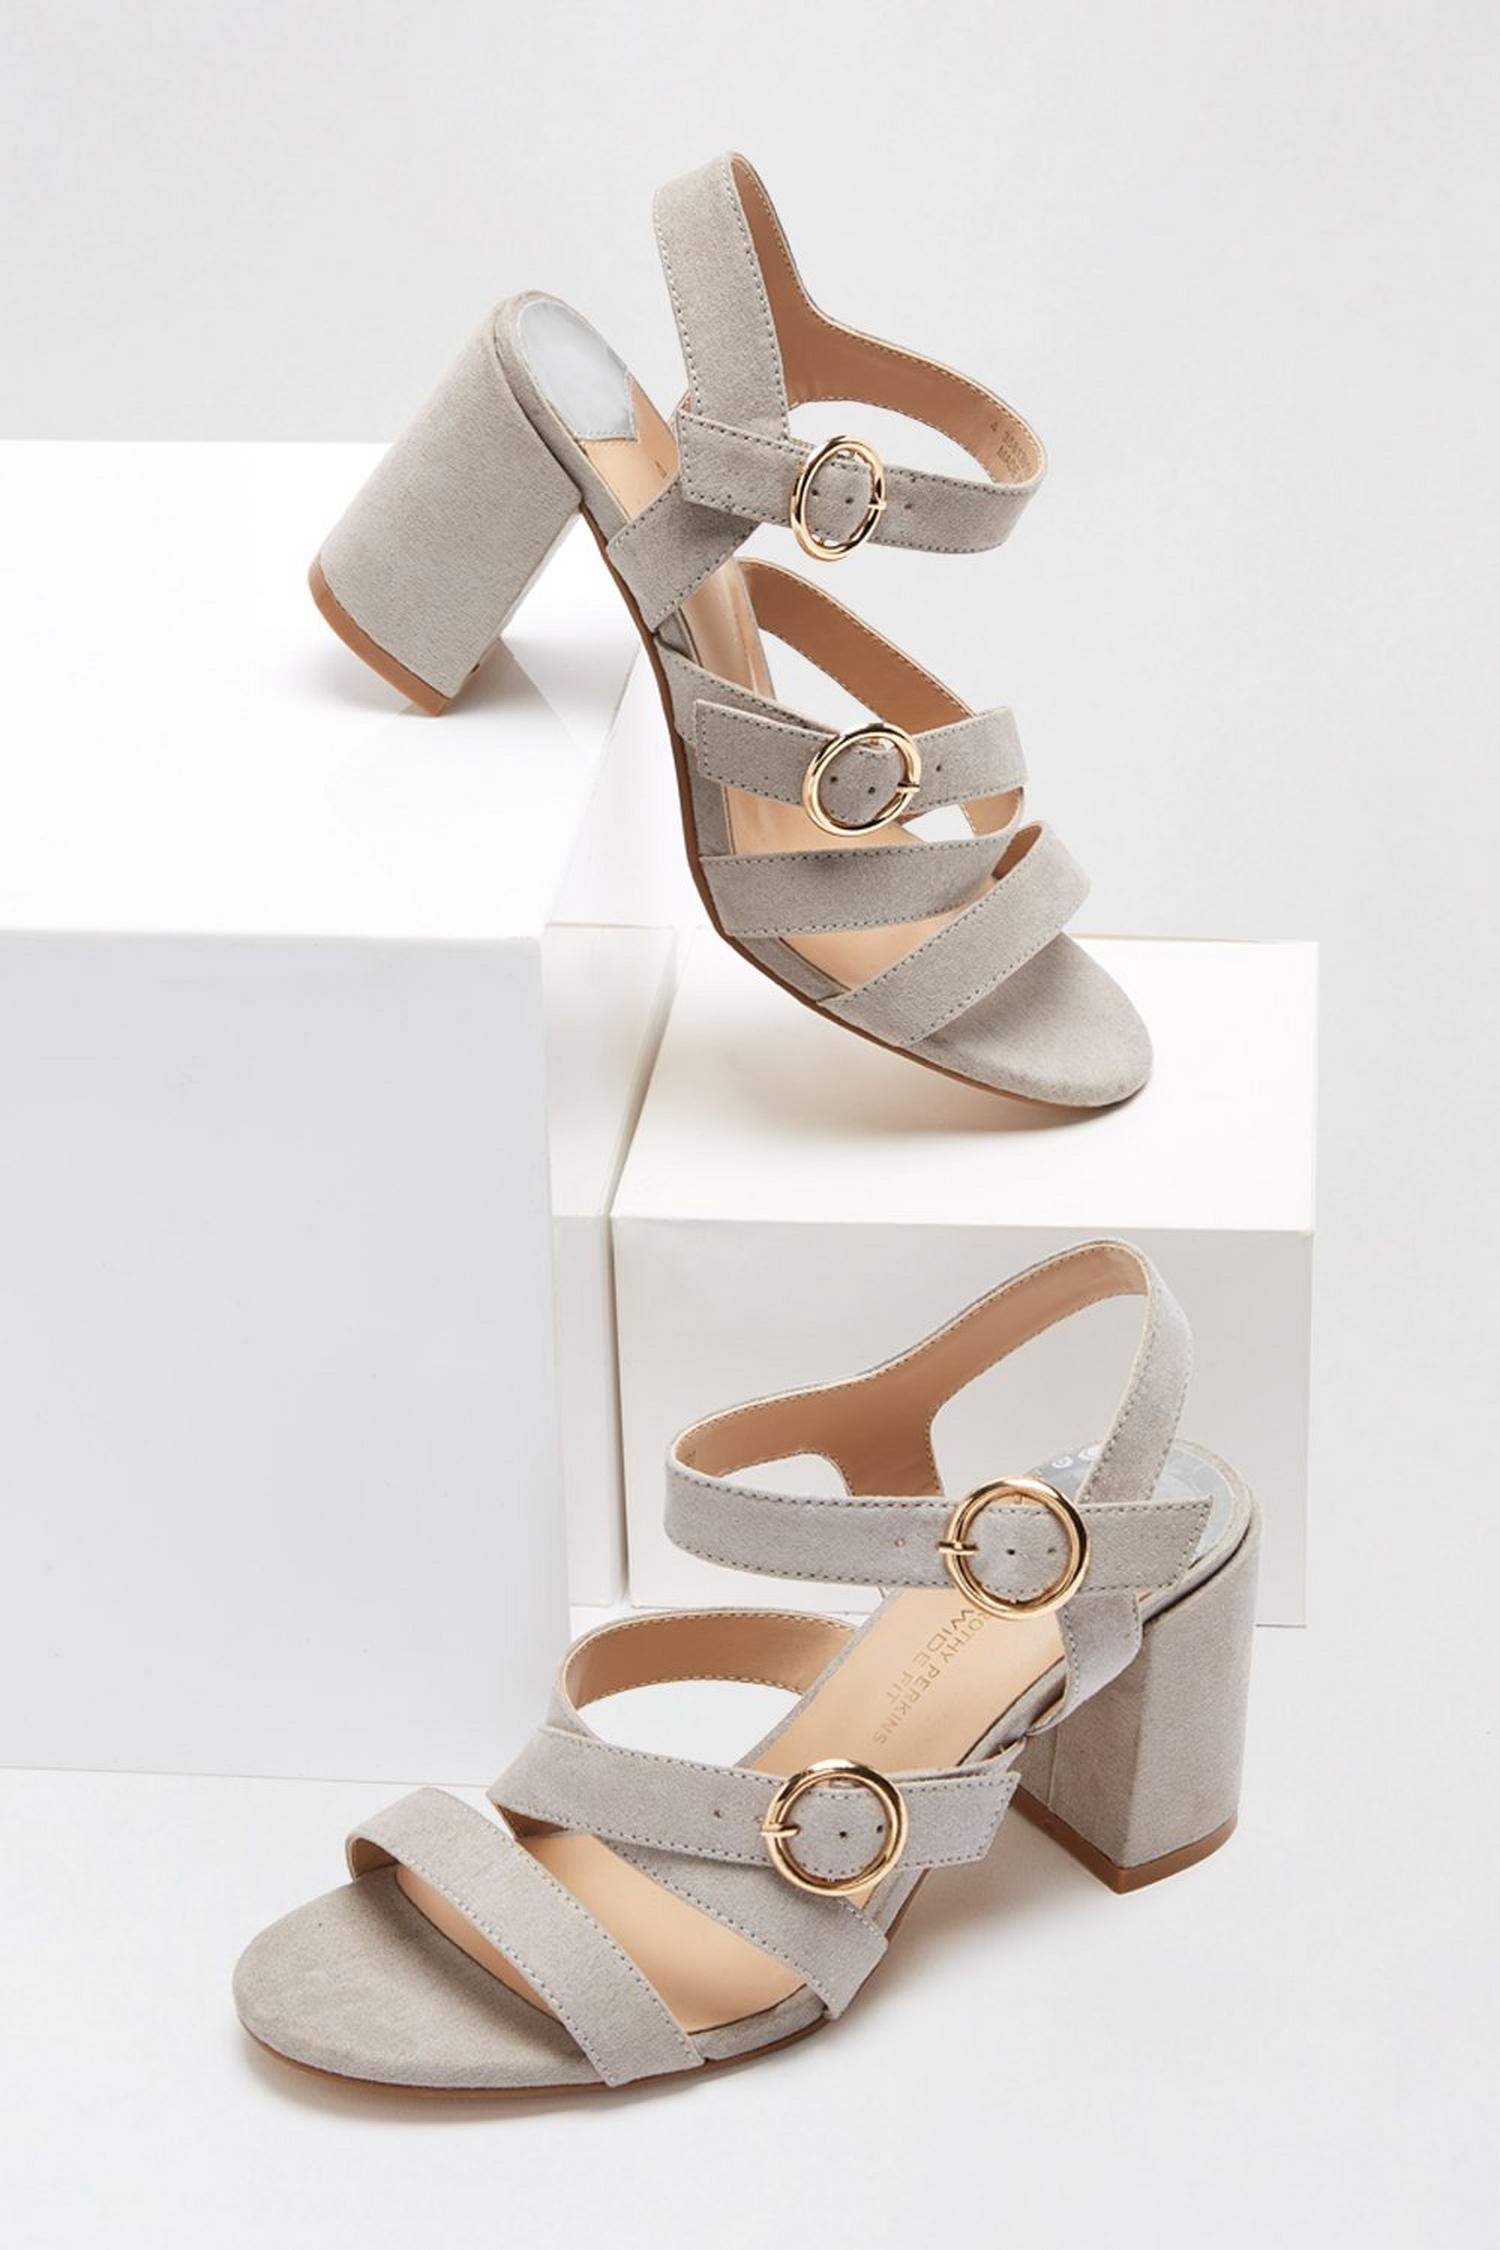 131 Wide Fit Grey Saffi Strappy Heeled Sandal image number 3